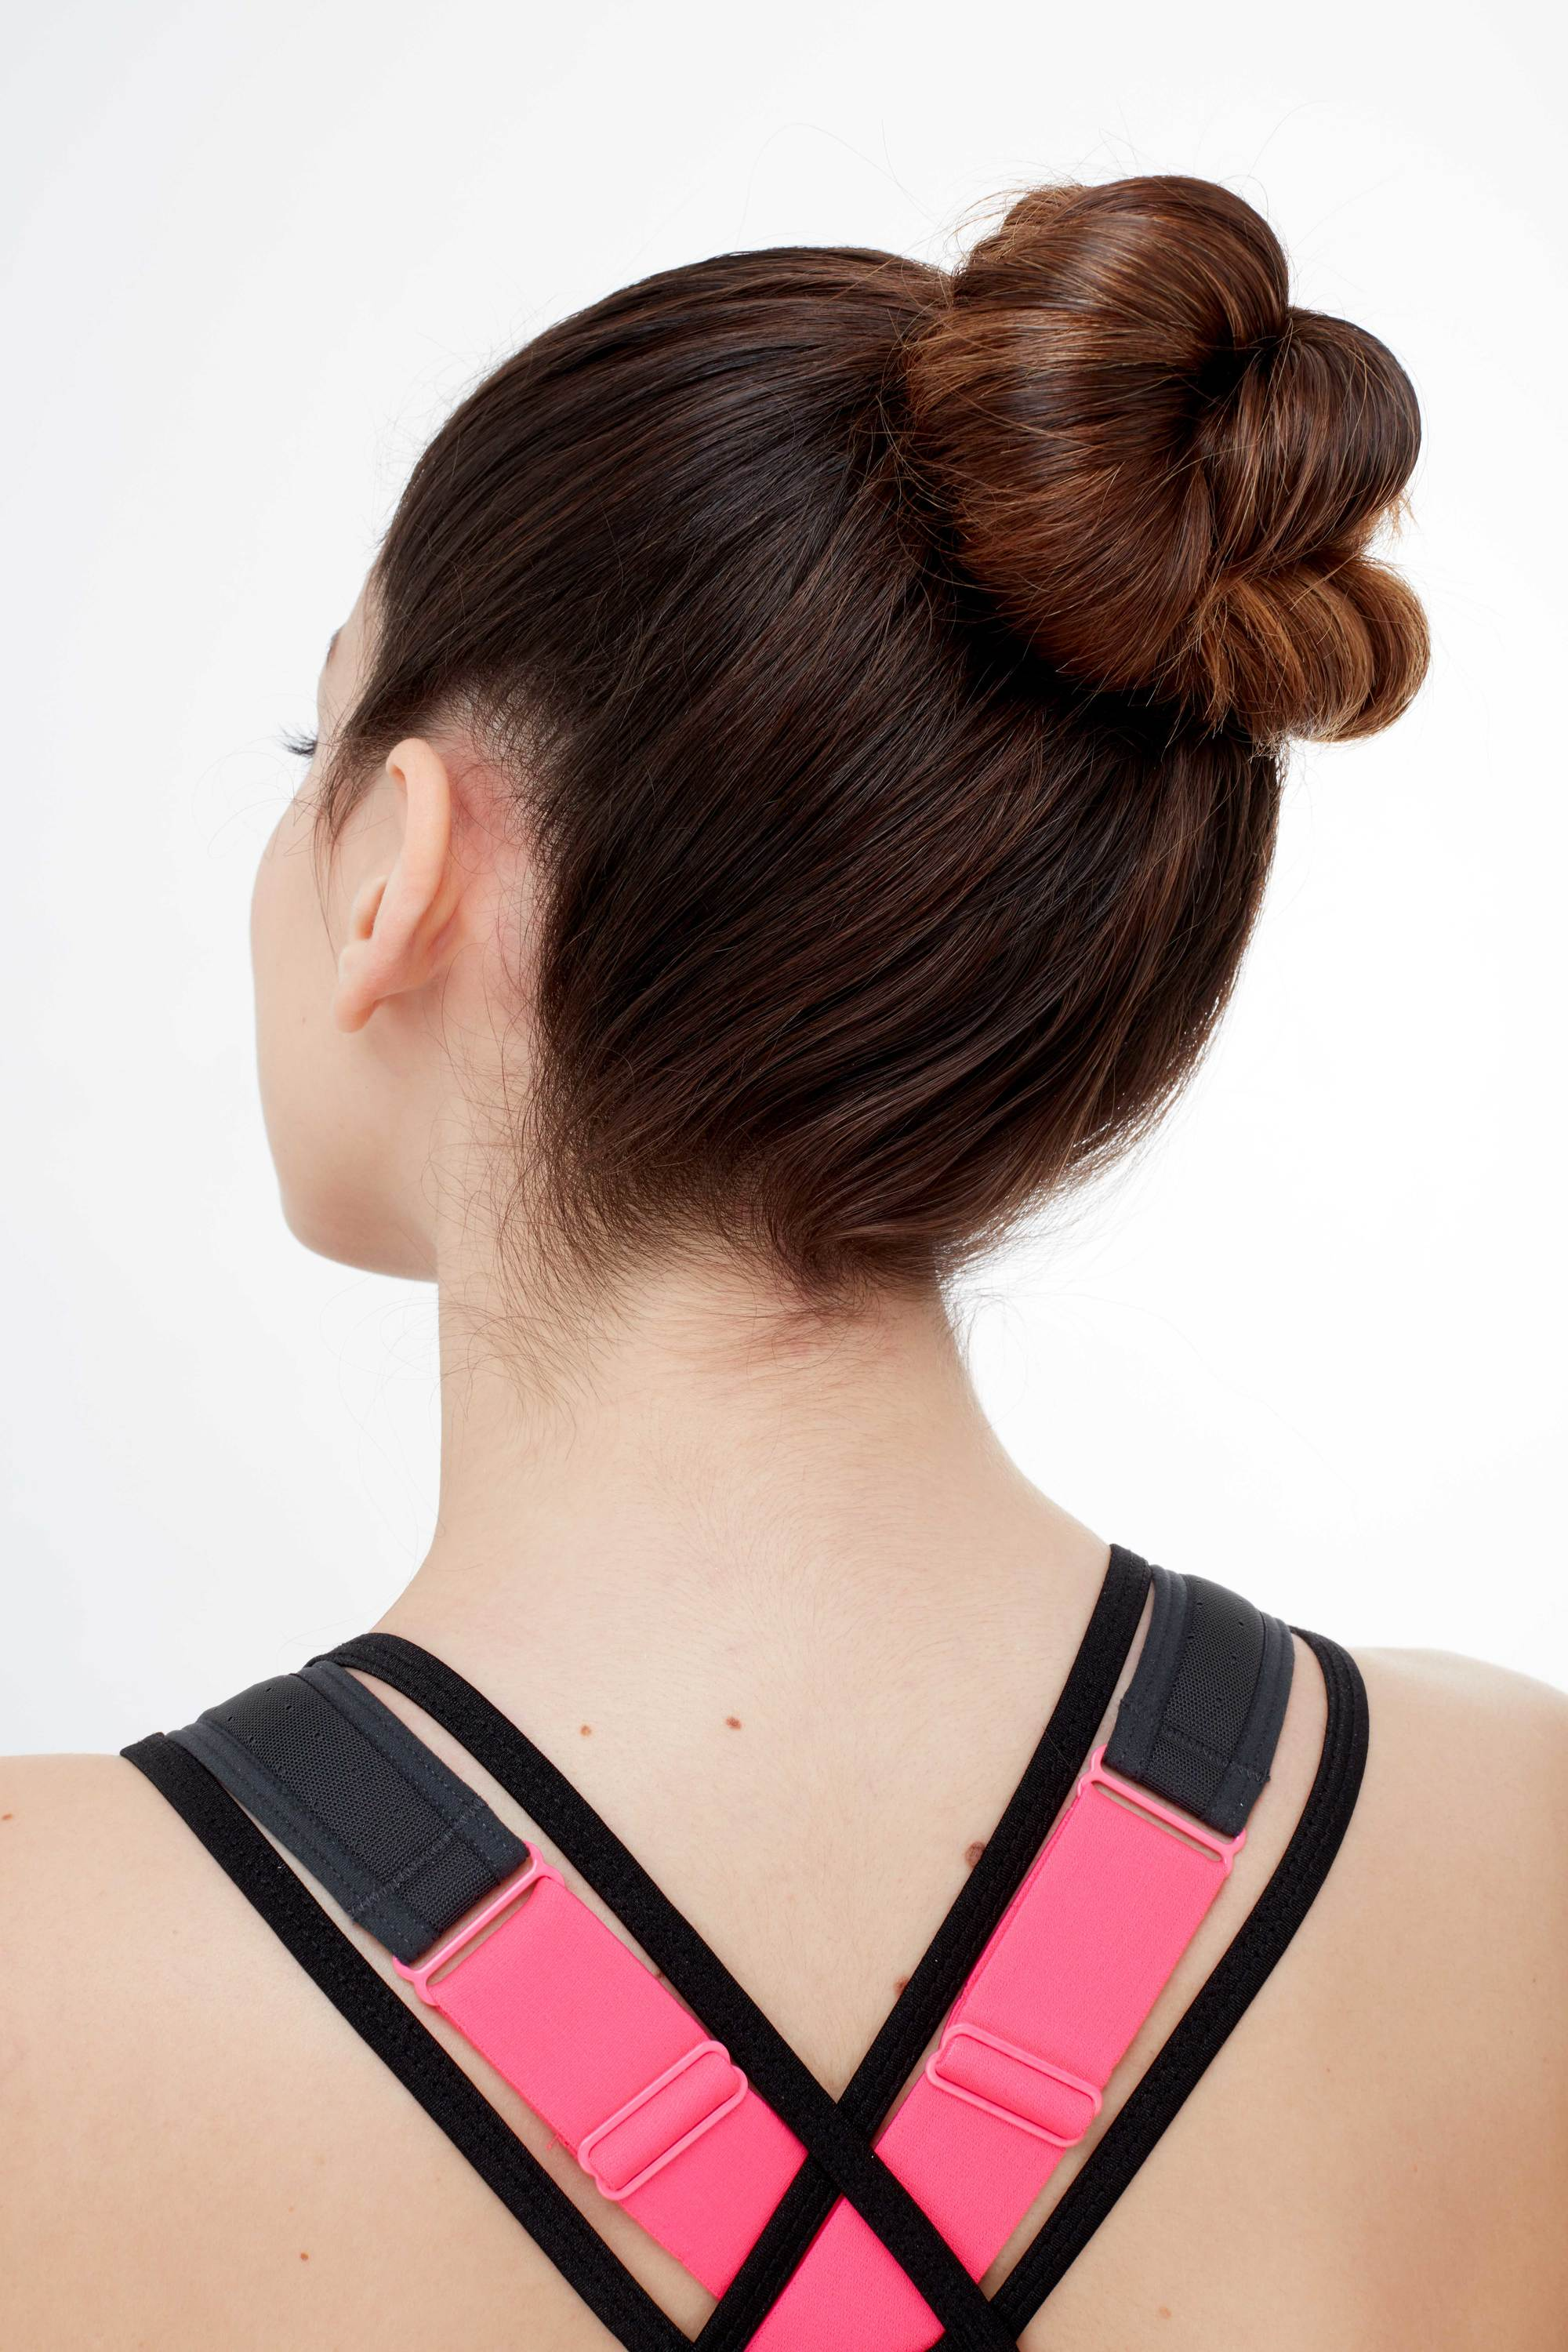 Gym hairstyles for thick hair: Back shot of a brunette model with a twisted high